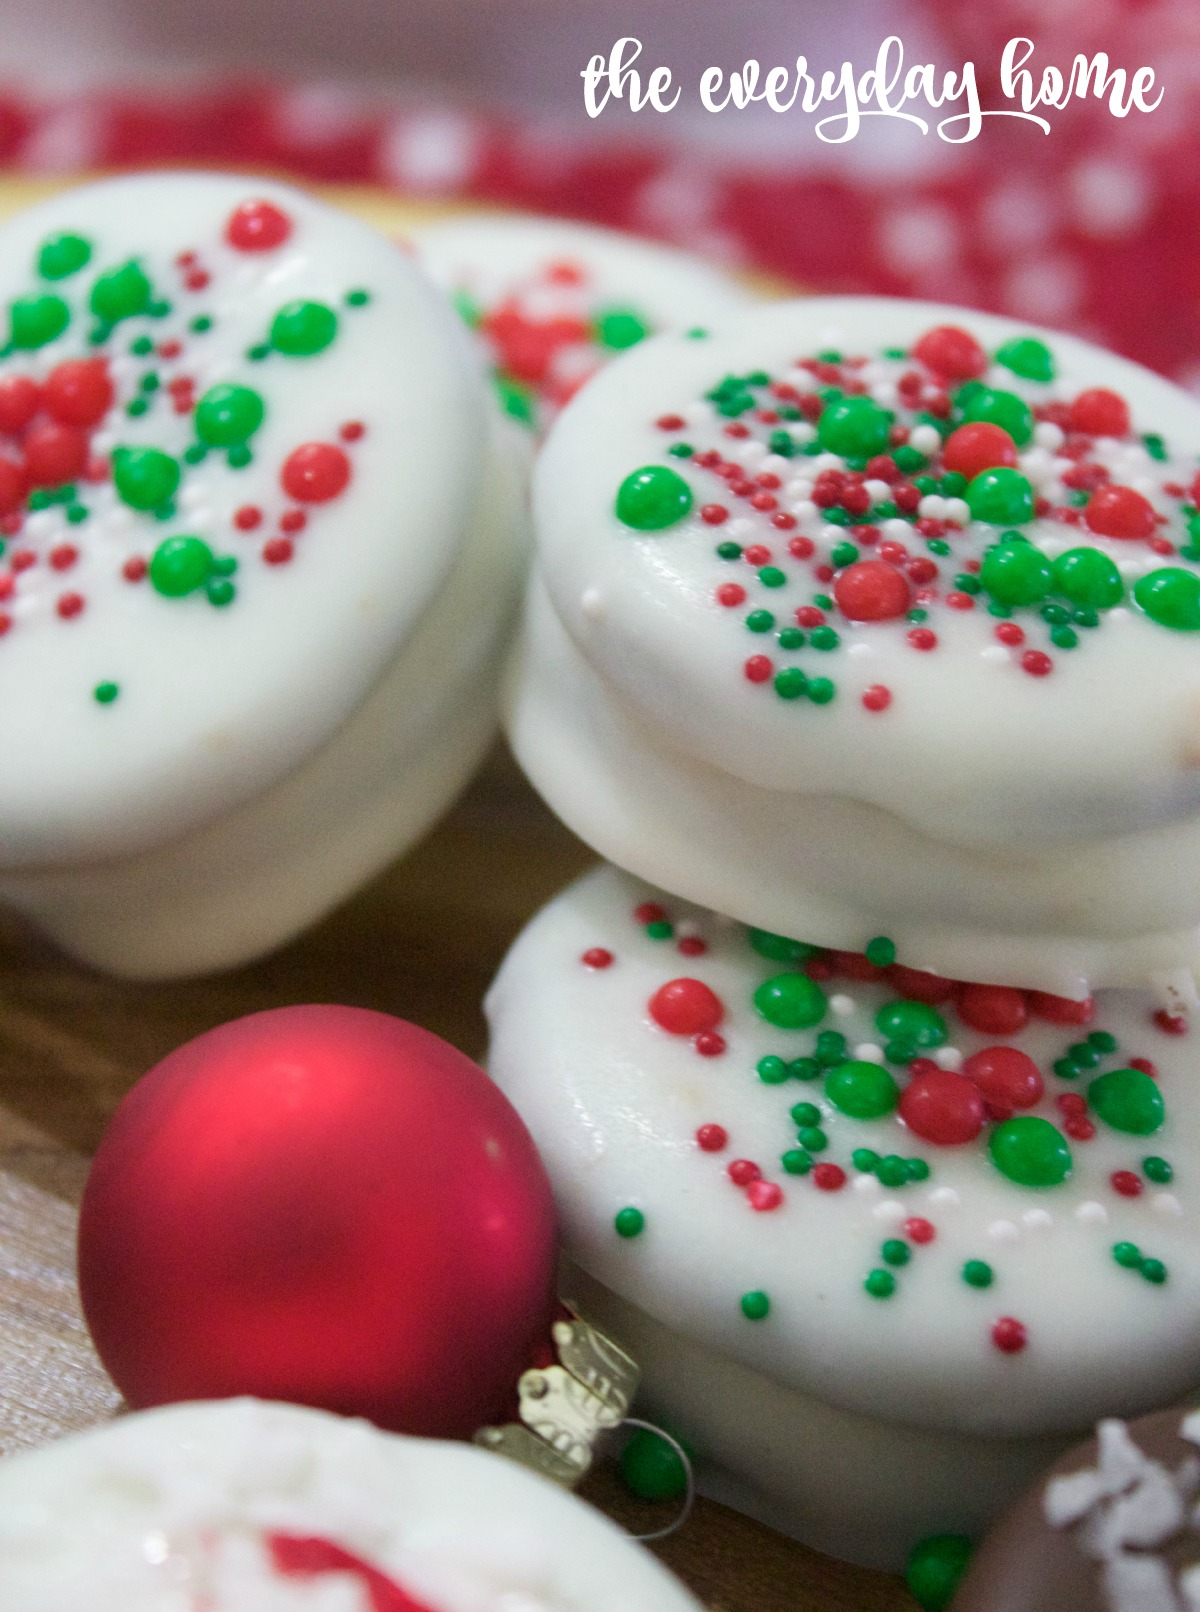 White Chocolate Covered Oreos with Sprinkles | 2015 Christmas Cookie Exchange | The Everyday Home | www.everydayhomeblog.com